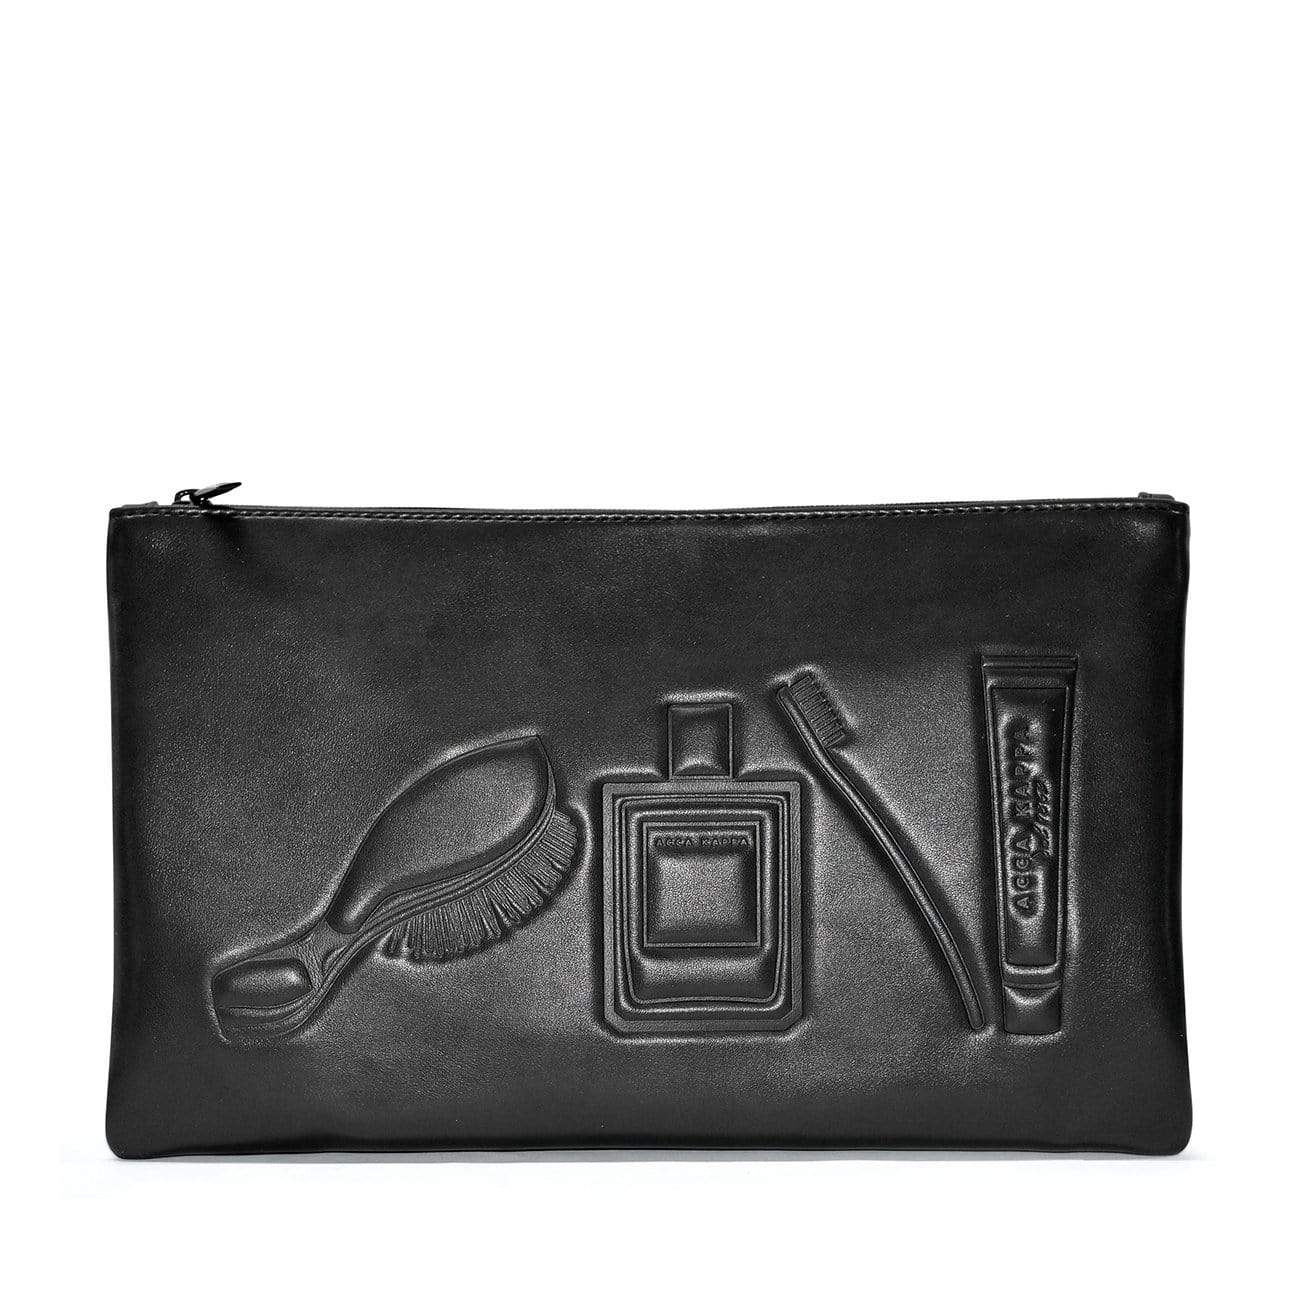 Acca Kappa Travel Bag - Black